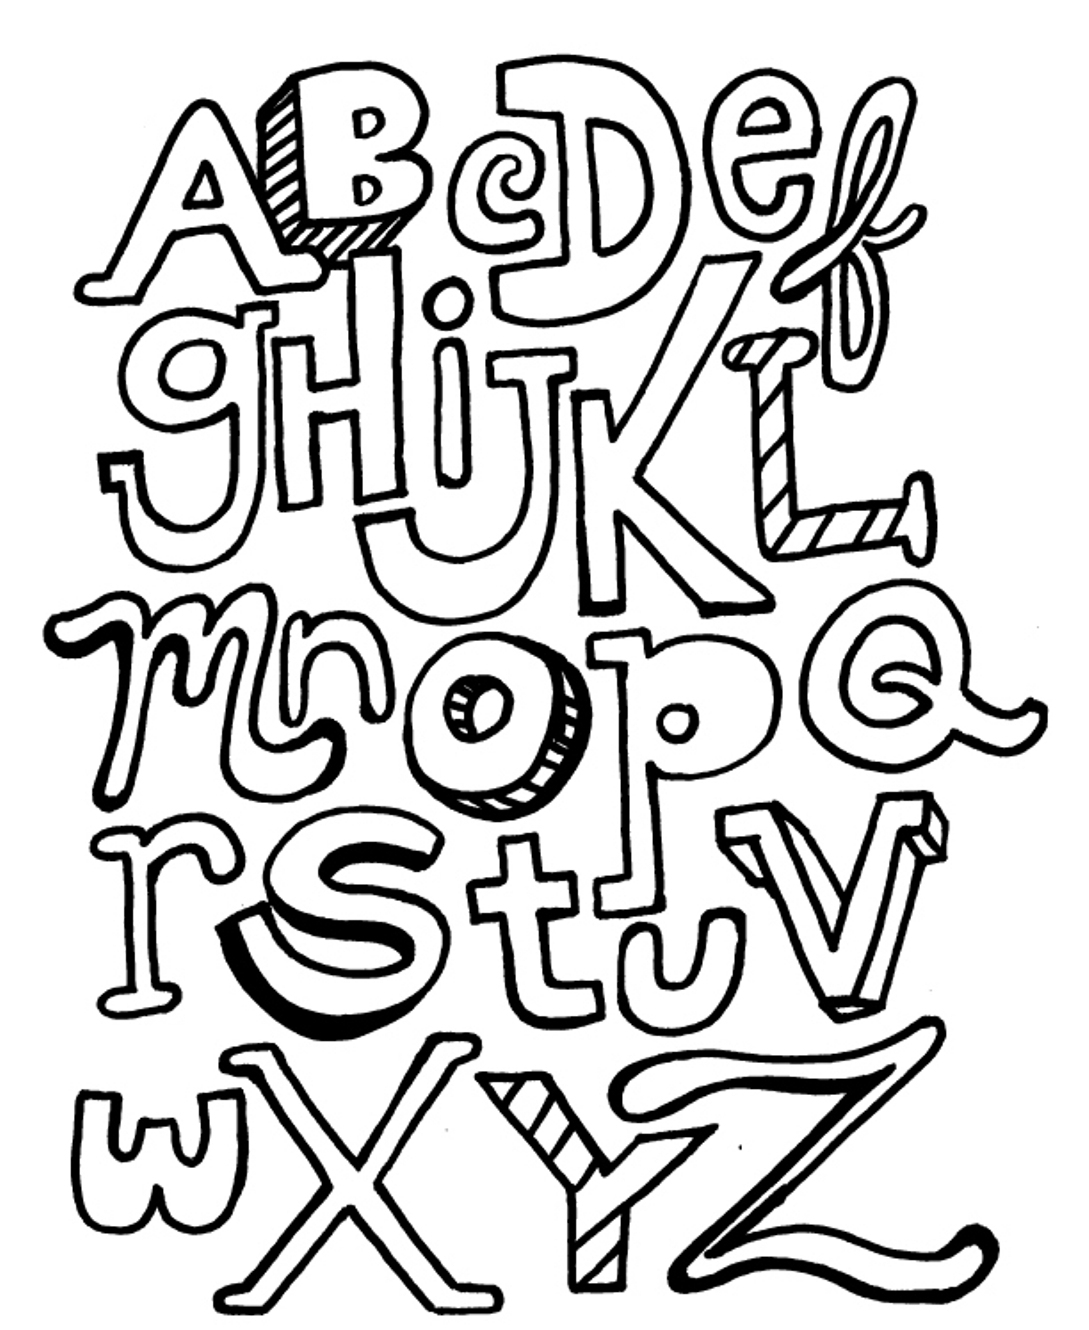 abc letters to color abc coloring pages getcoloringpagescom letters to abc color